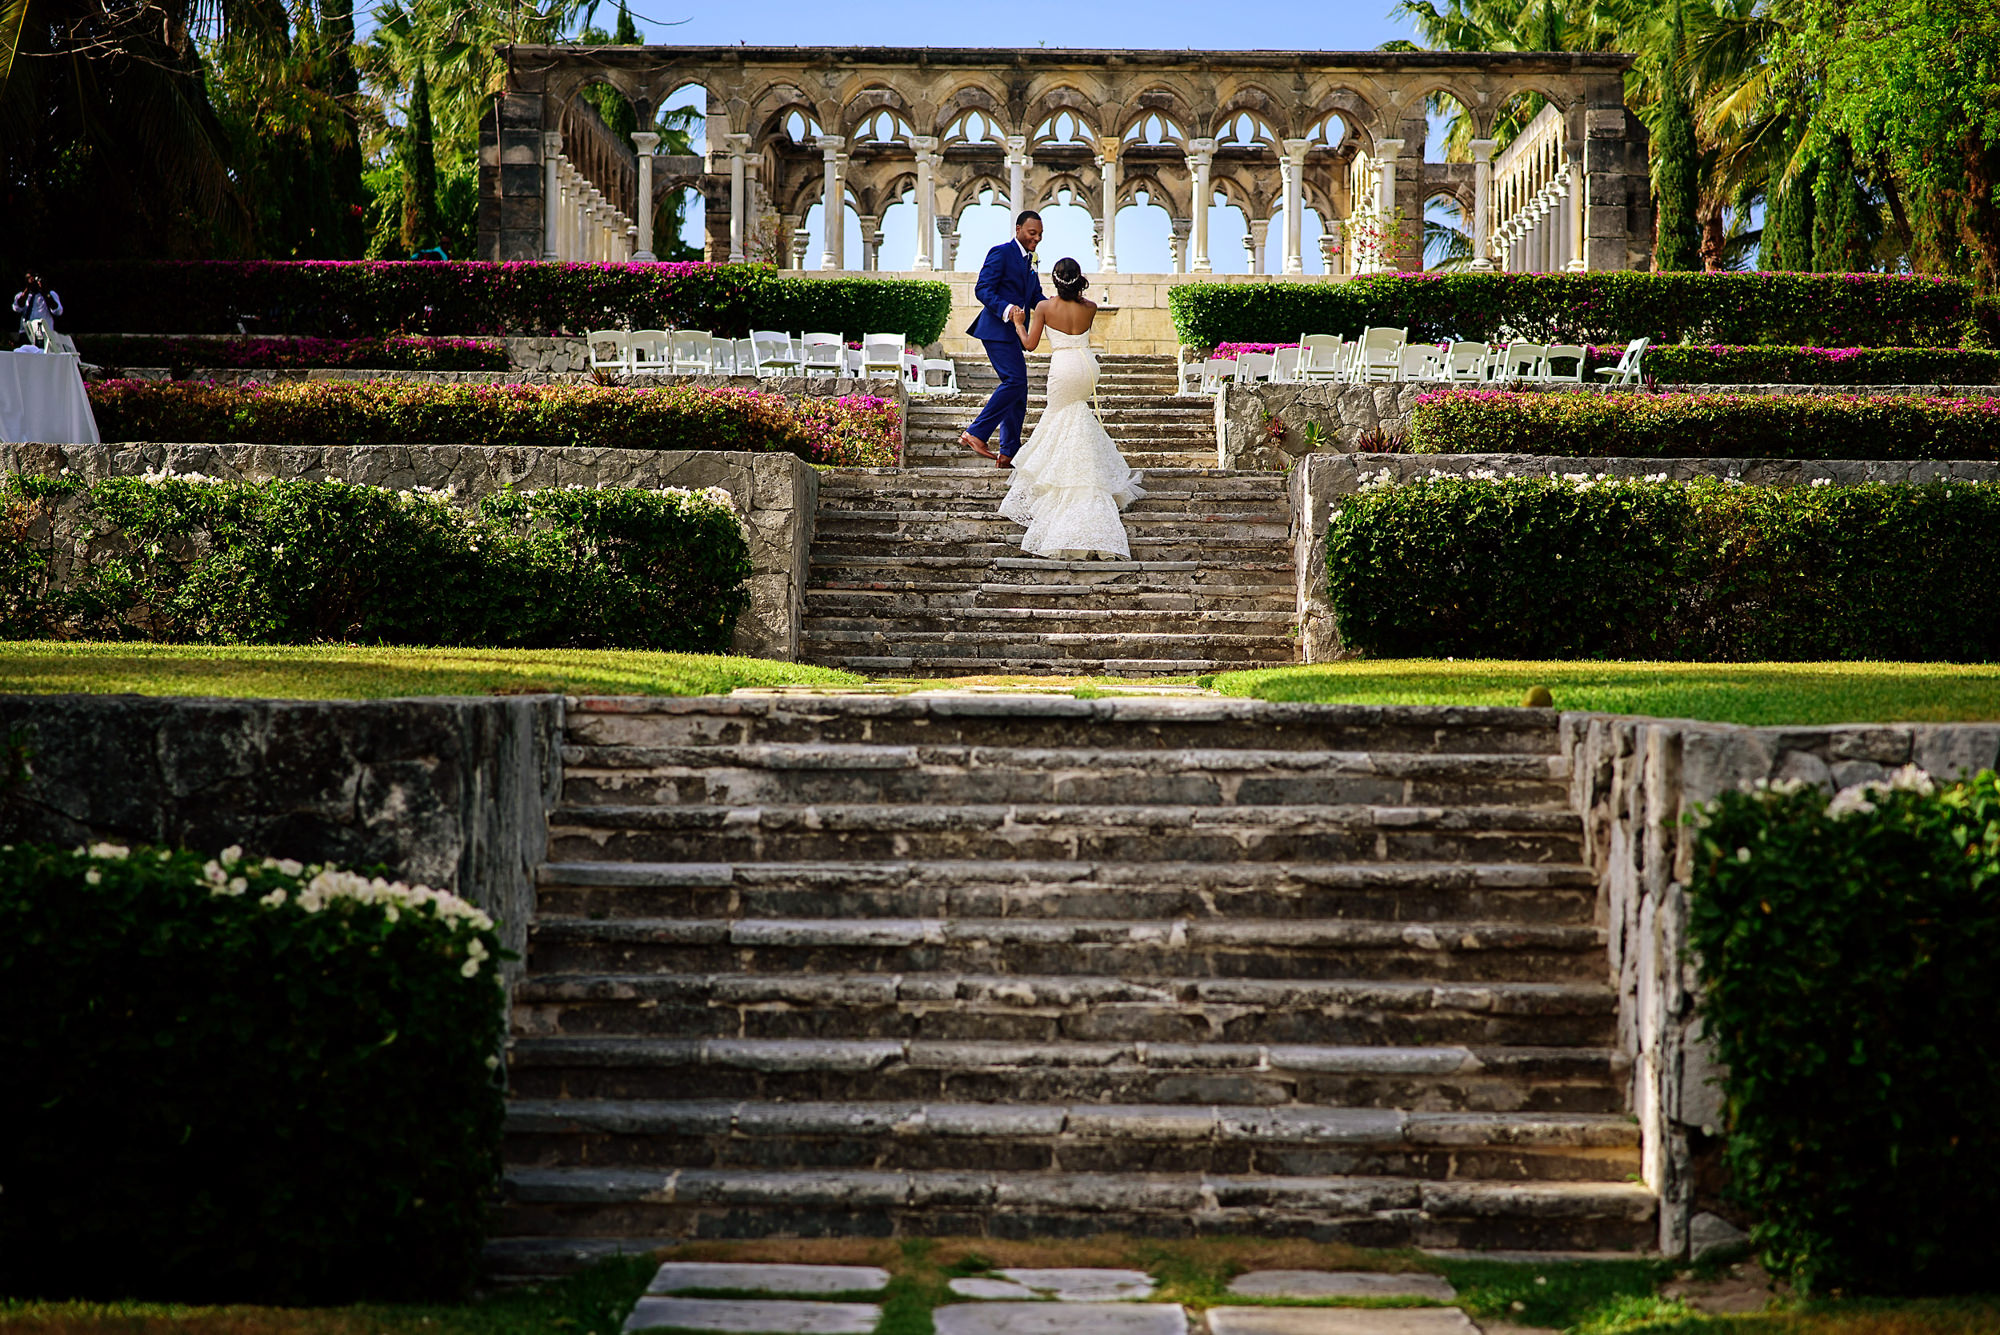 Couple walk to ceremony area up roman garden stairs - photo by Jide Alakija